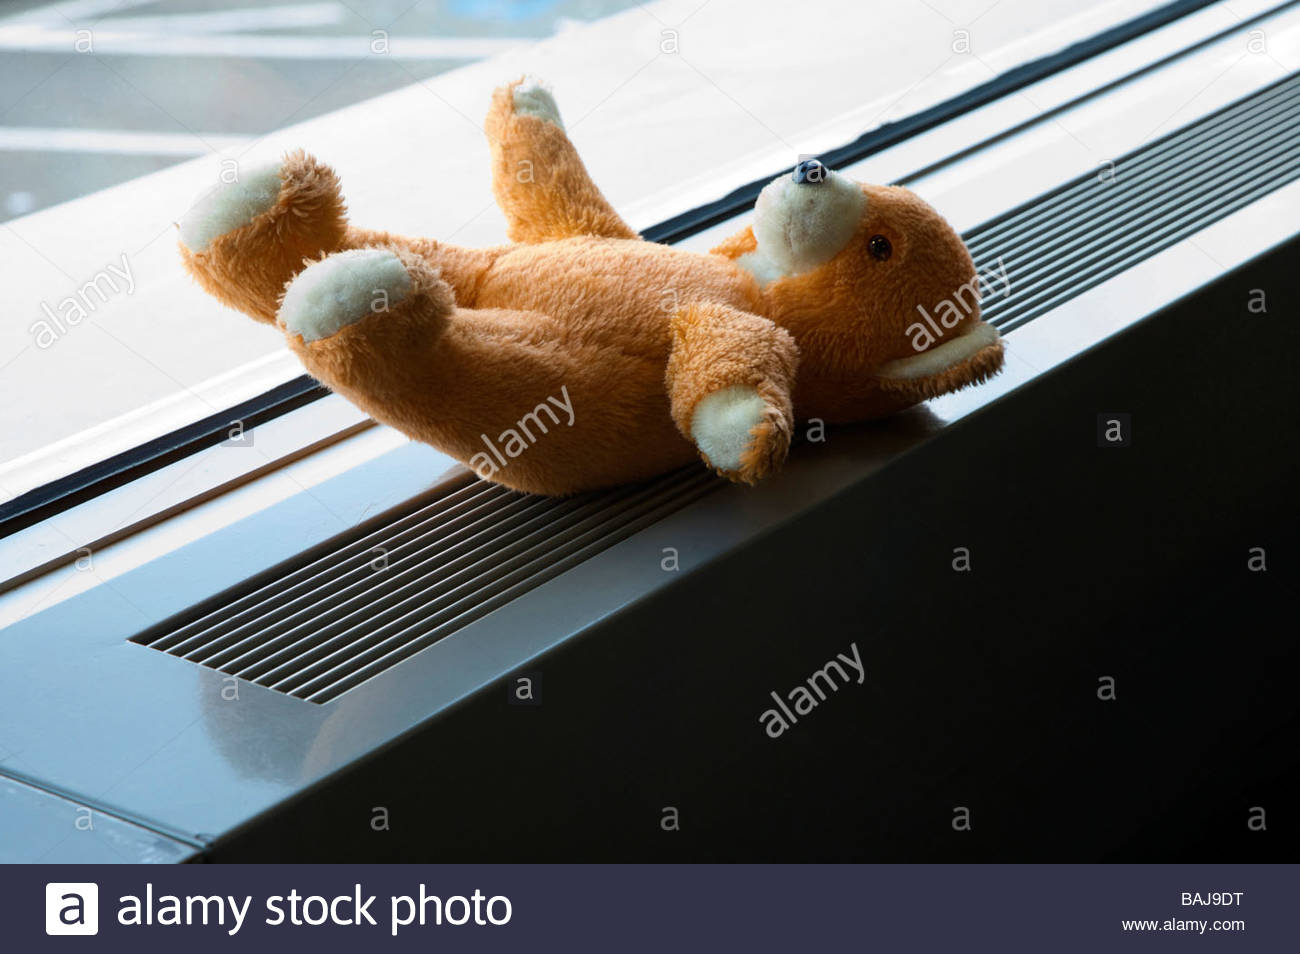 teddy bear left behind on a window sill inside - Stock Image